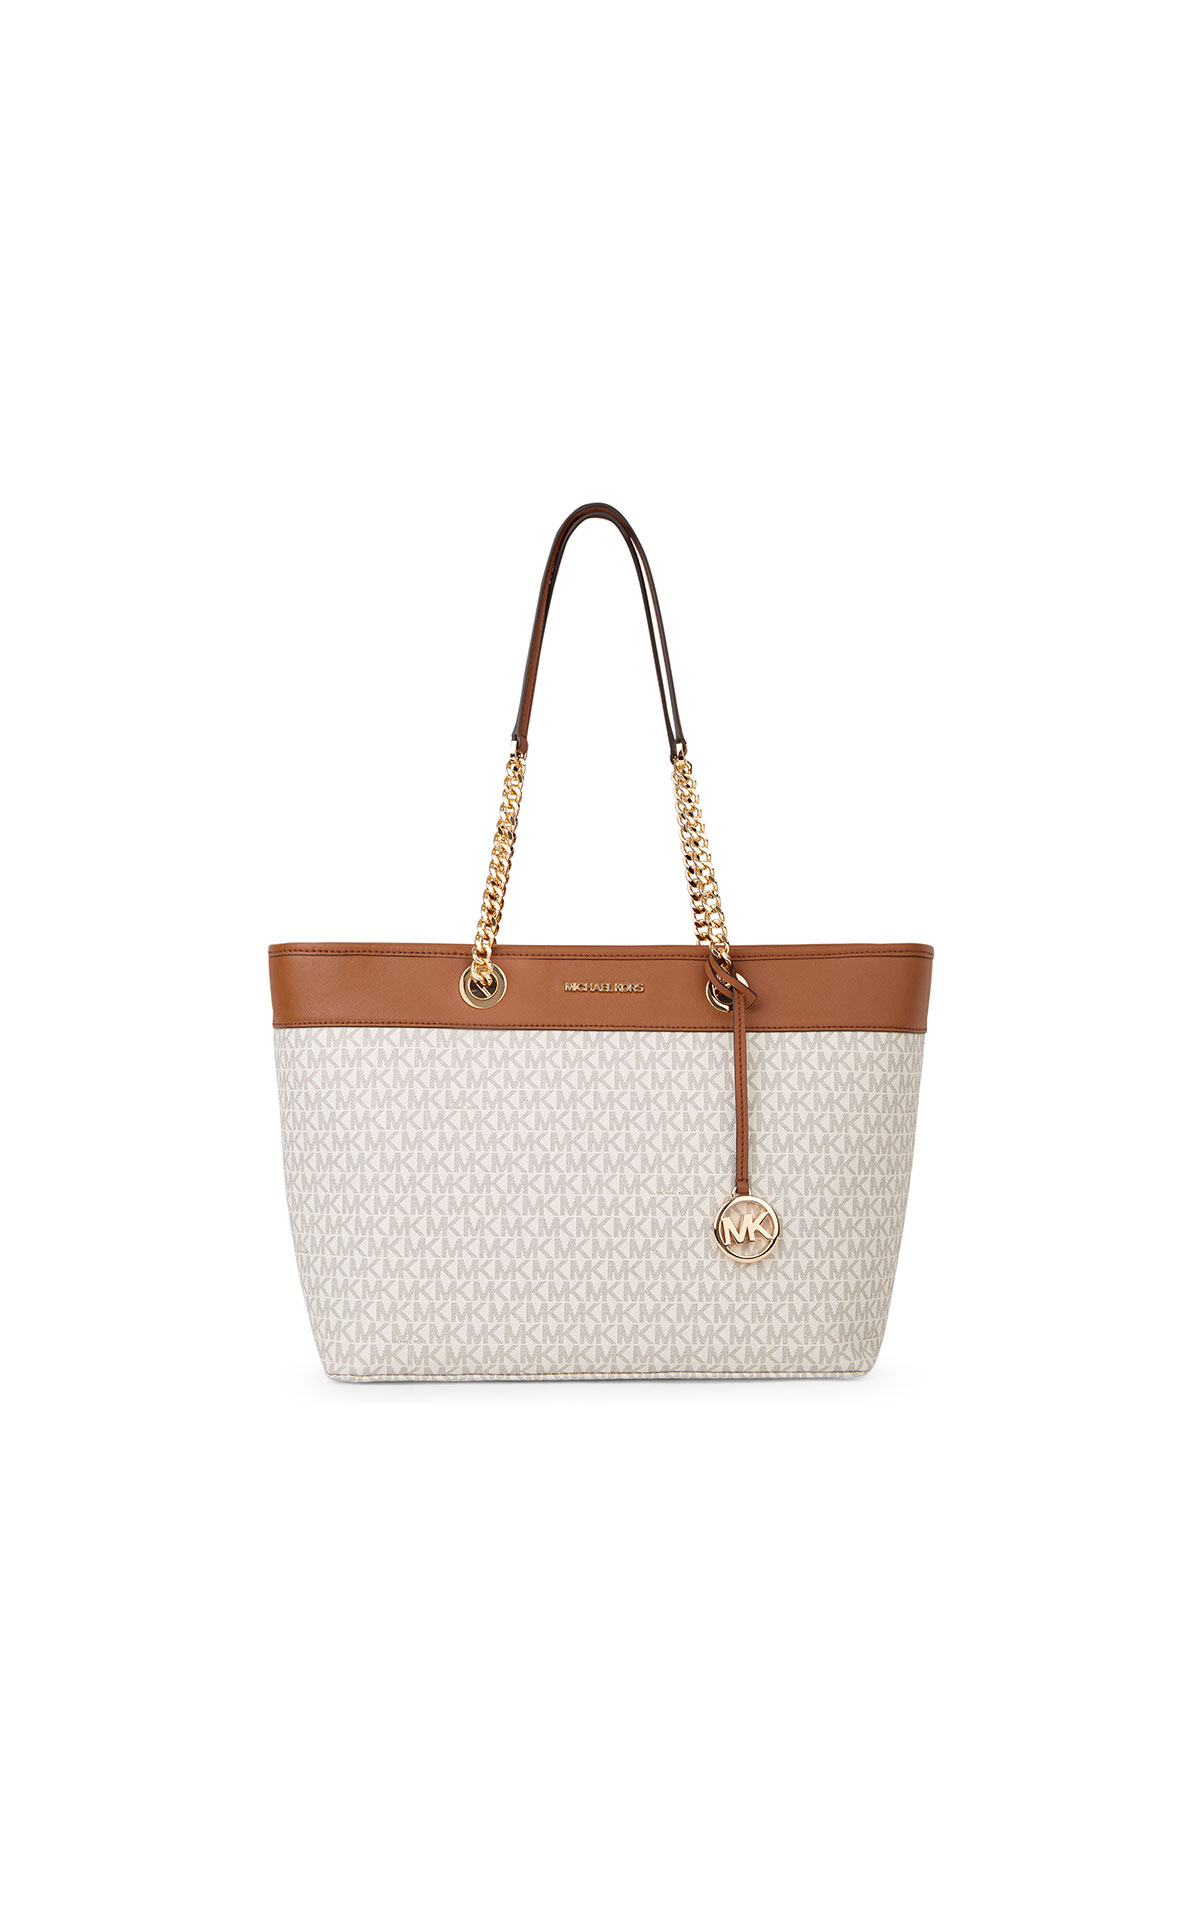 Michael Kors Shannia large ew chain tote at The Bicester Village Shopping Collection